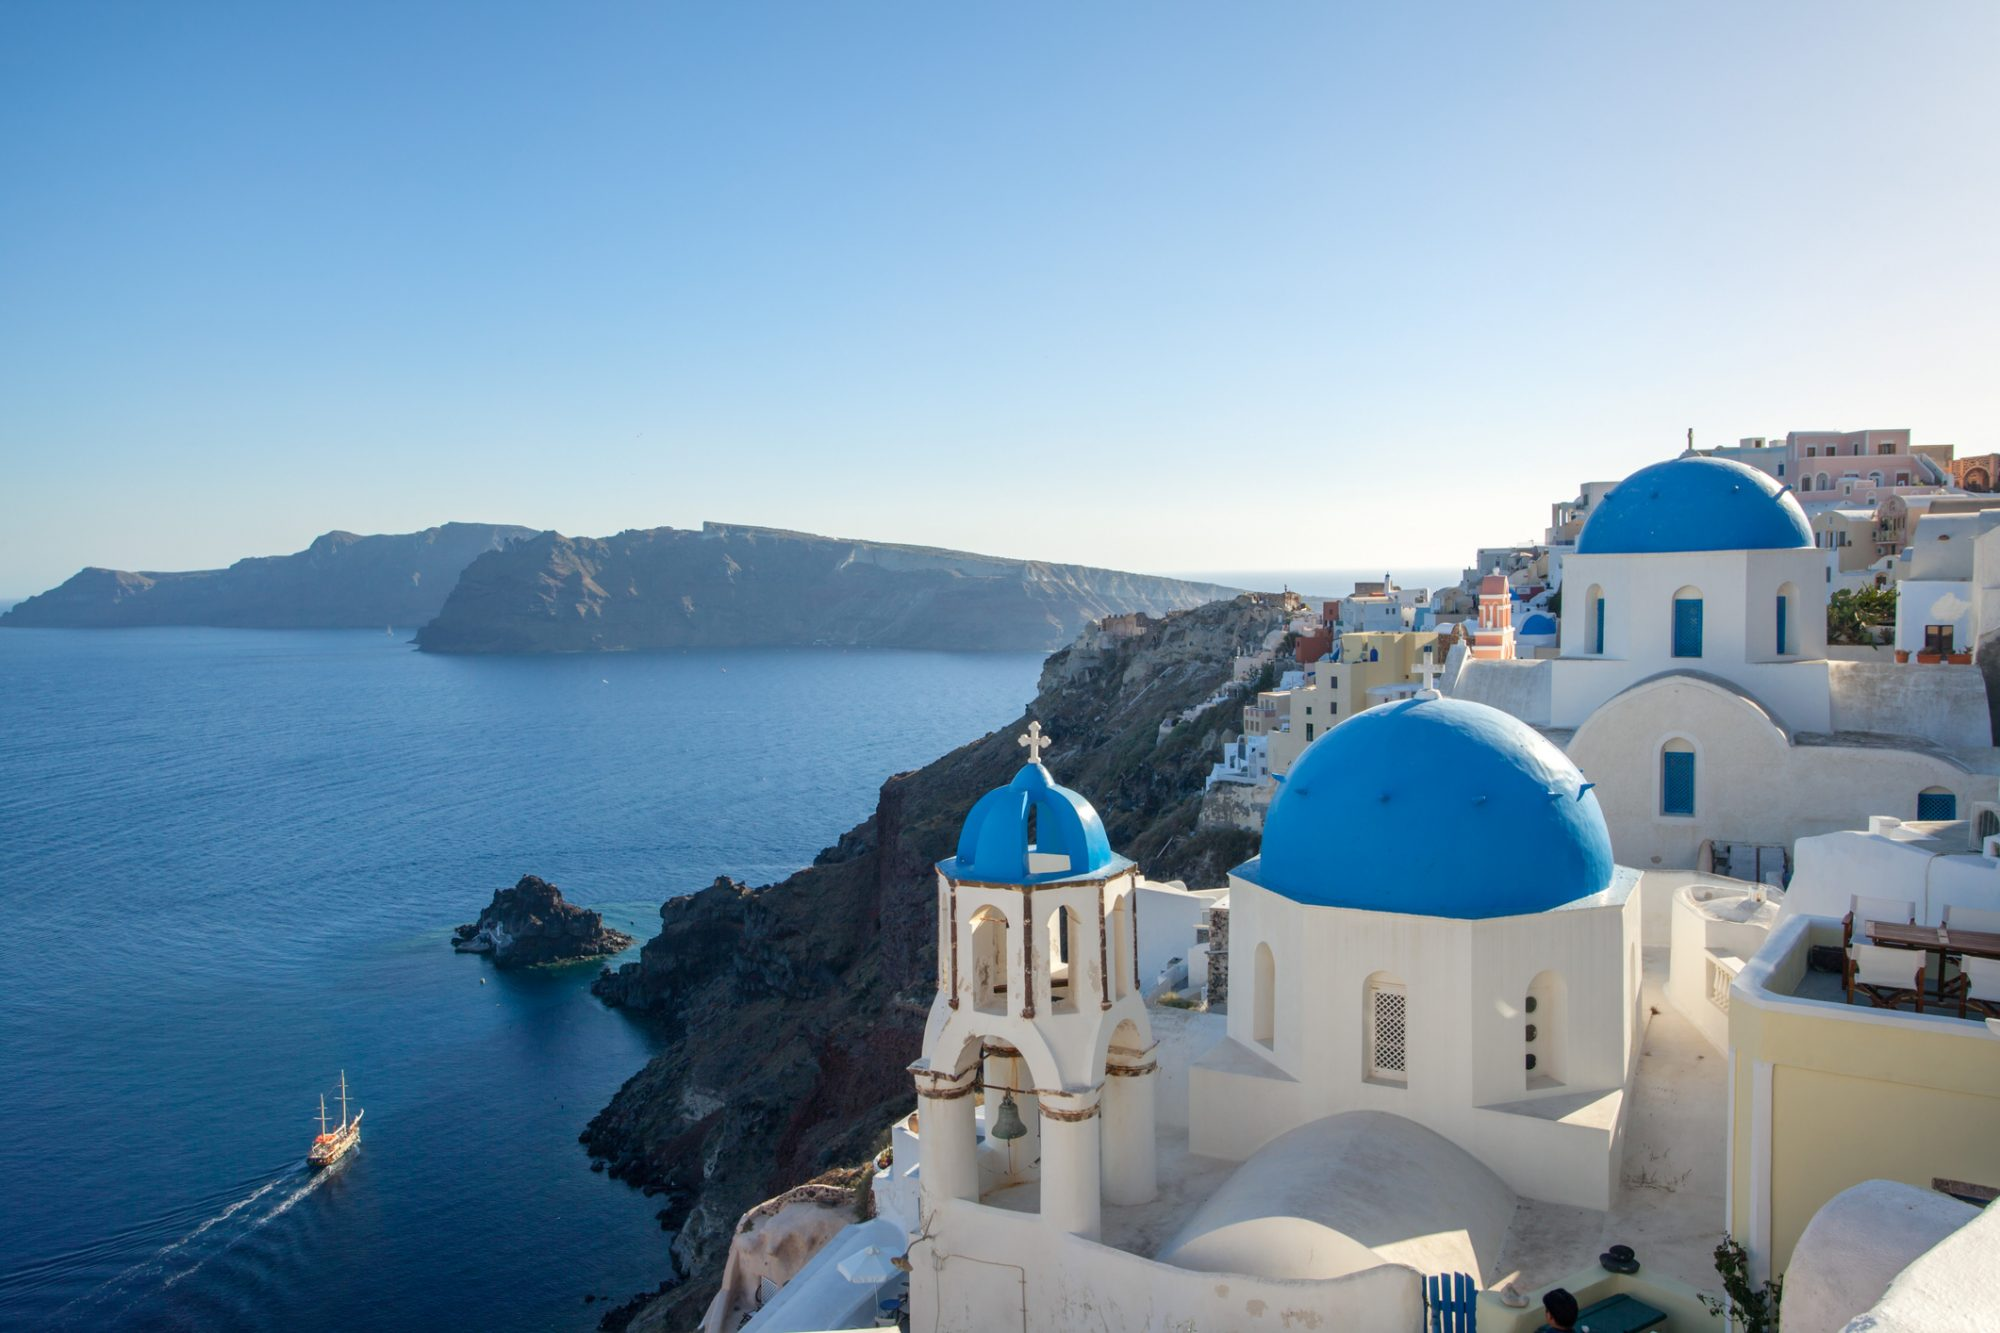 Take a Dream Trip to Greece for Only $372 Round-Trip on the World's Best Airline